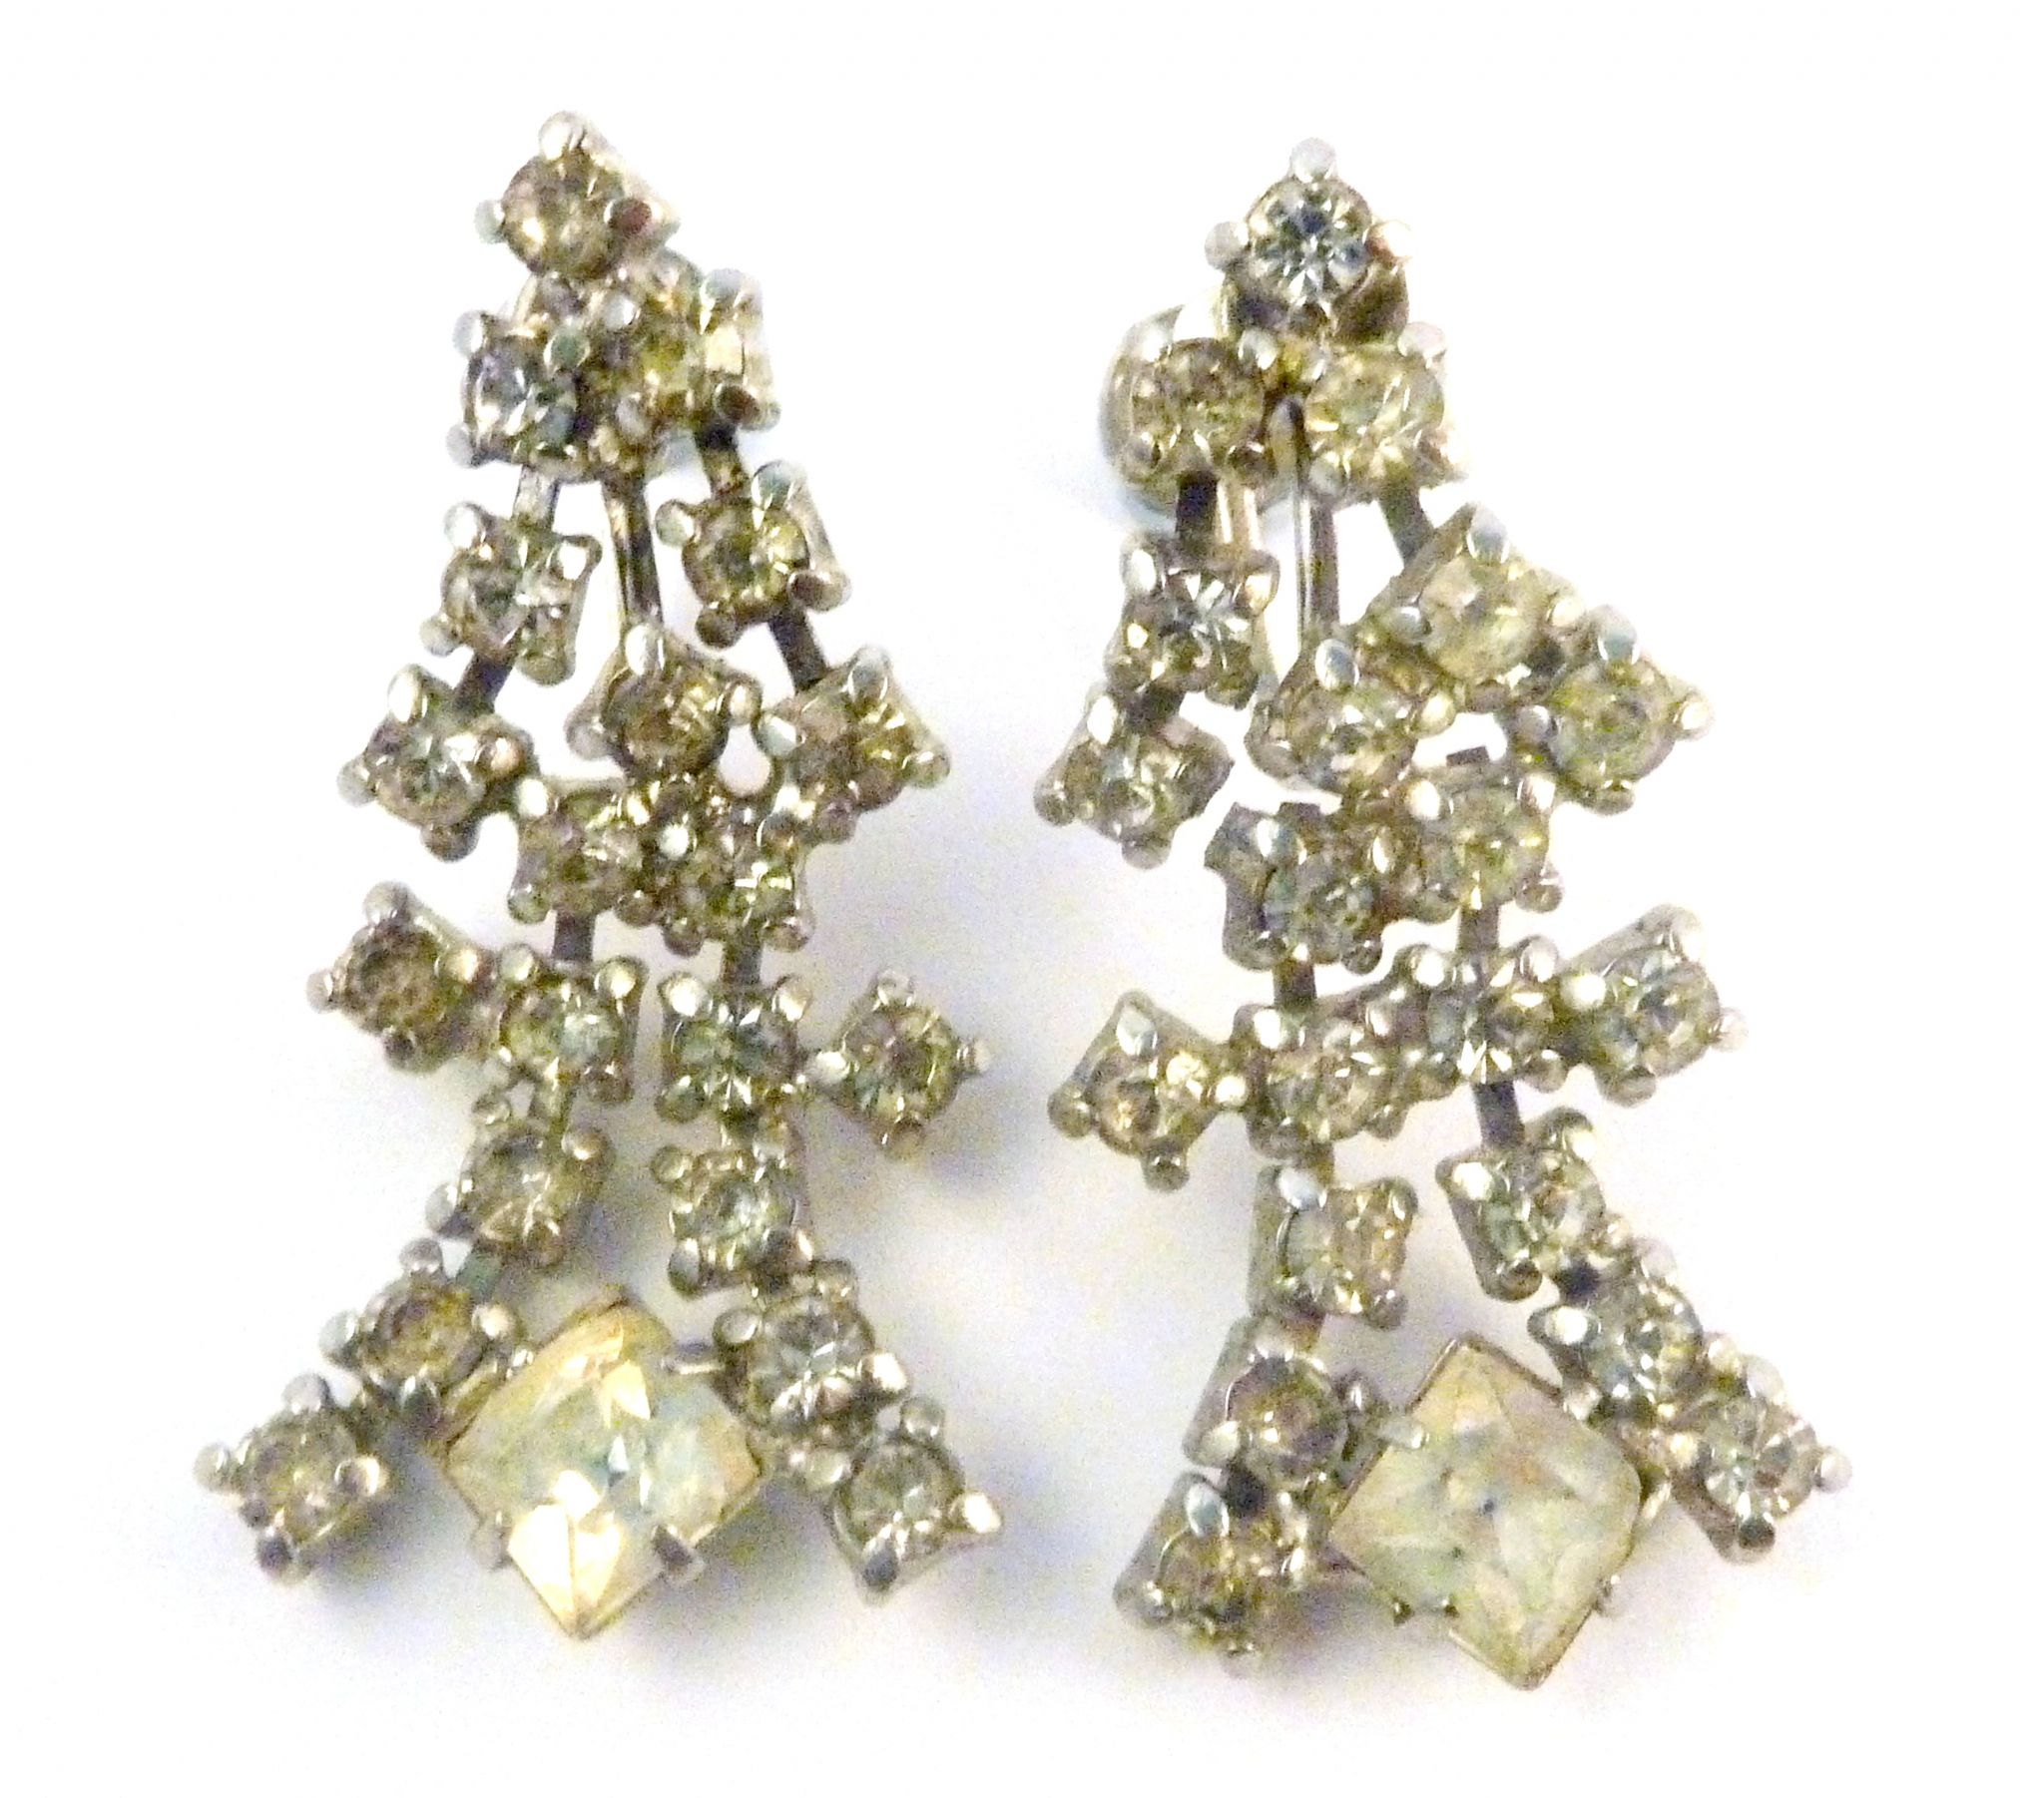 Art Deco Style Earrings Uk Vintage Art Deco Style Rhinestone Drop Screw Back Earrings